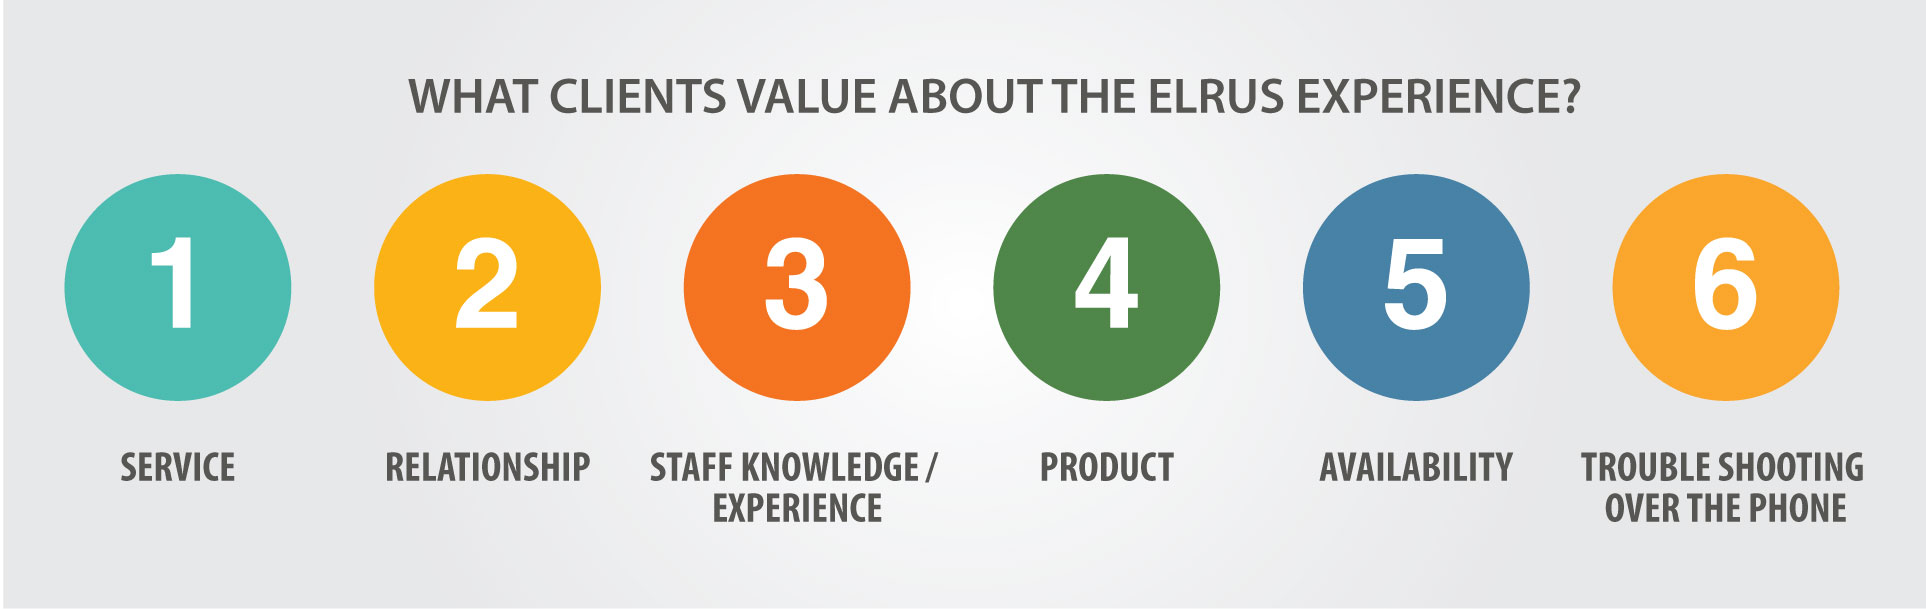 elrus_main_what_clients_value